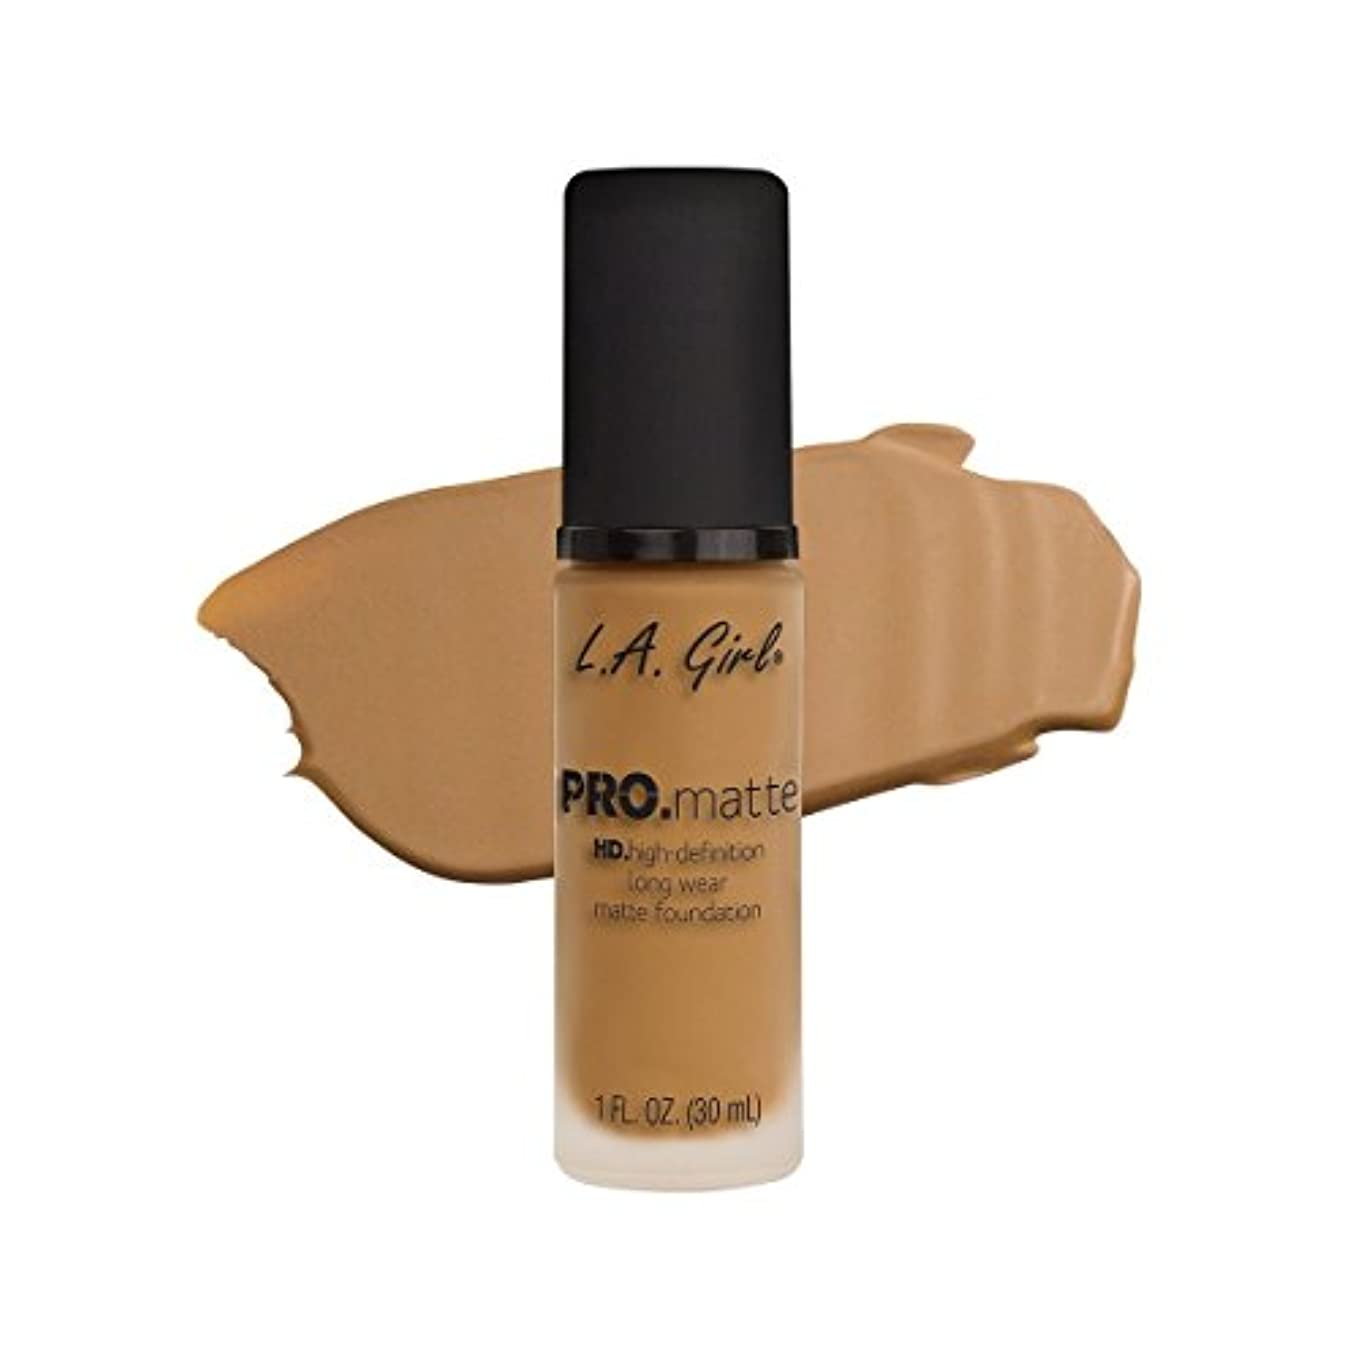 音楽家新着暴君(6 Pack) L.A. GIRL Pro Matte Foundation - Warm Sienna (並行輸入品)